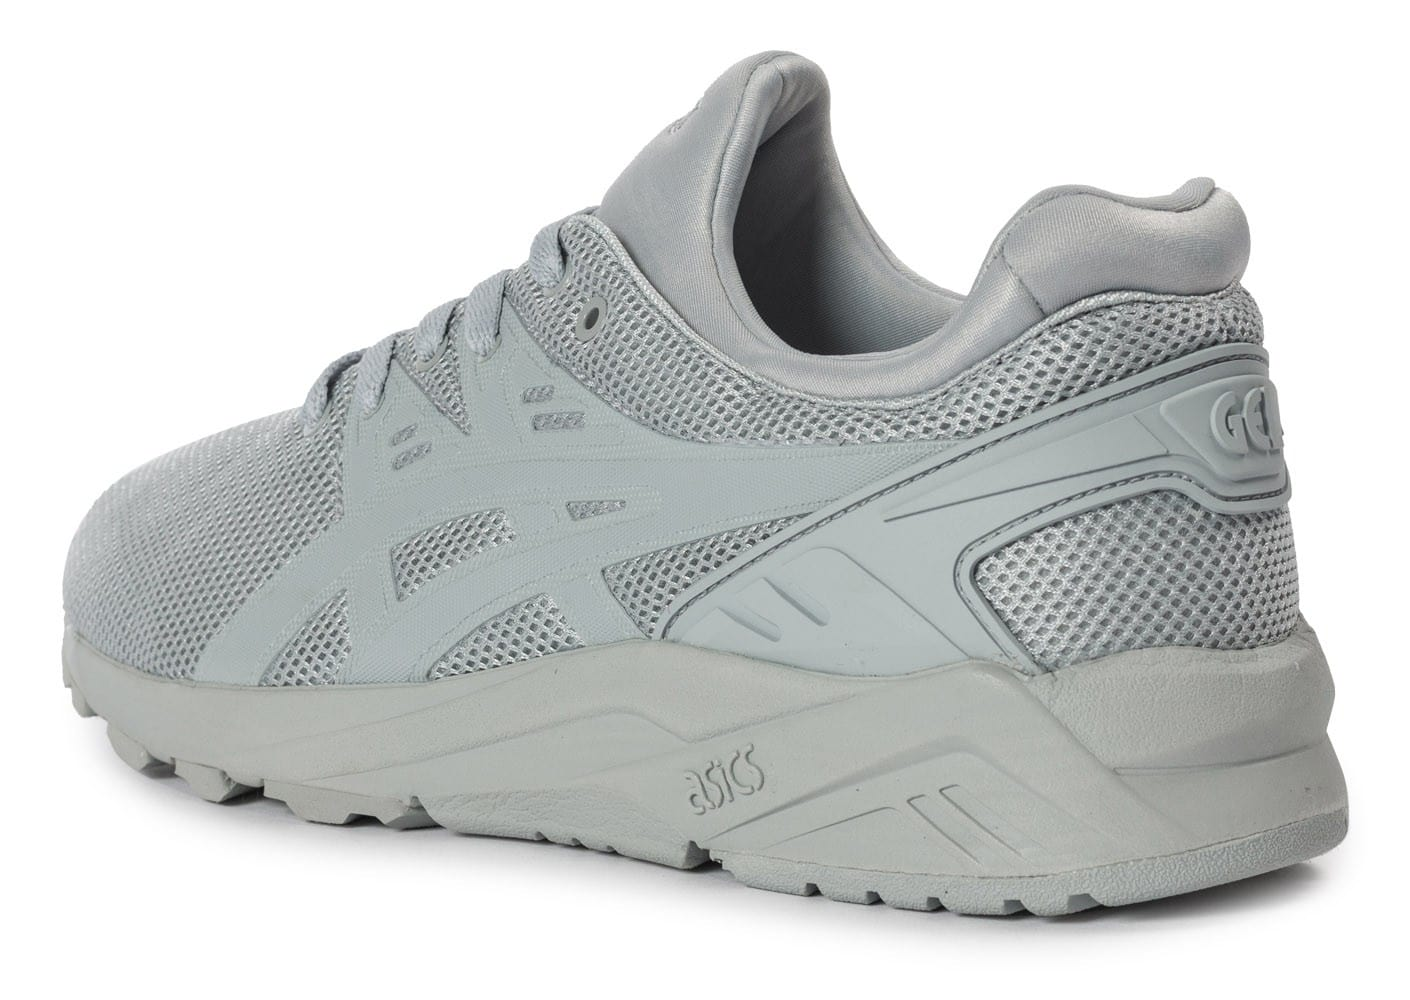 Chaussures Gel Evo Grise Homme Asics Baskets Kayano Trainer BCdQrxoeW